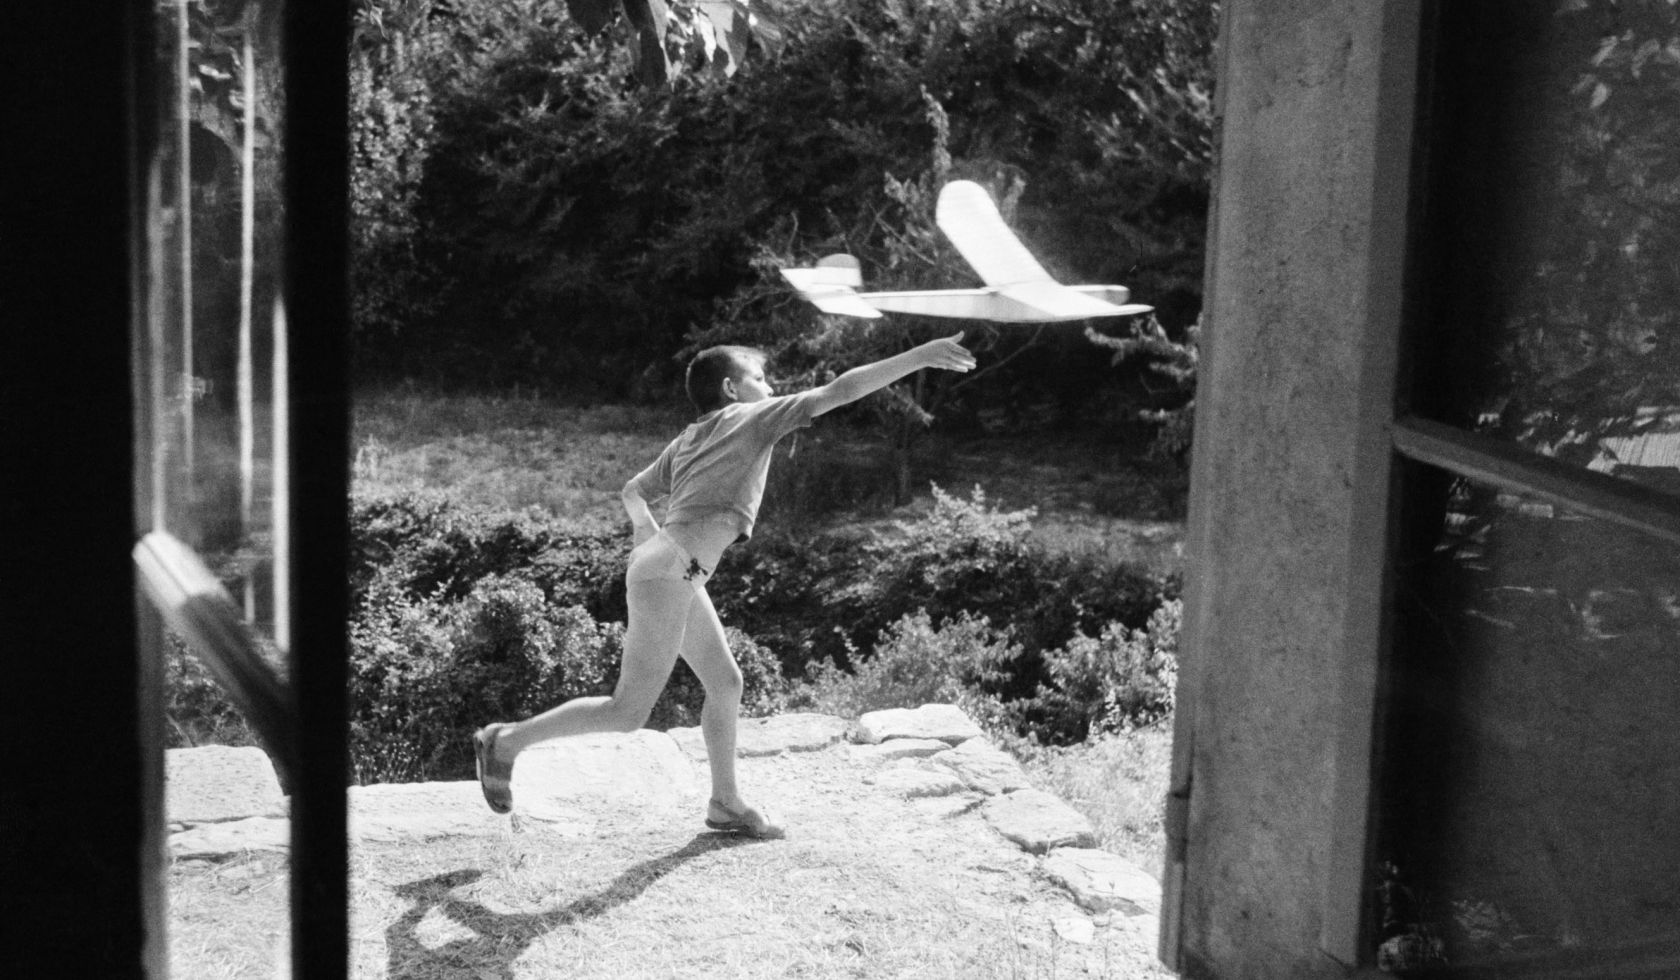 Le Luberon de Willy Ronis